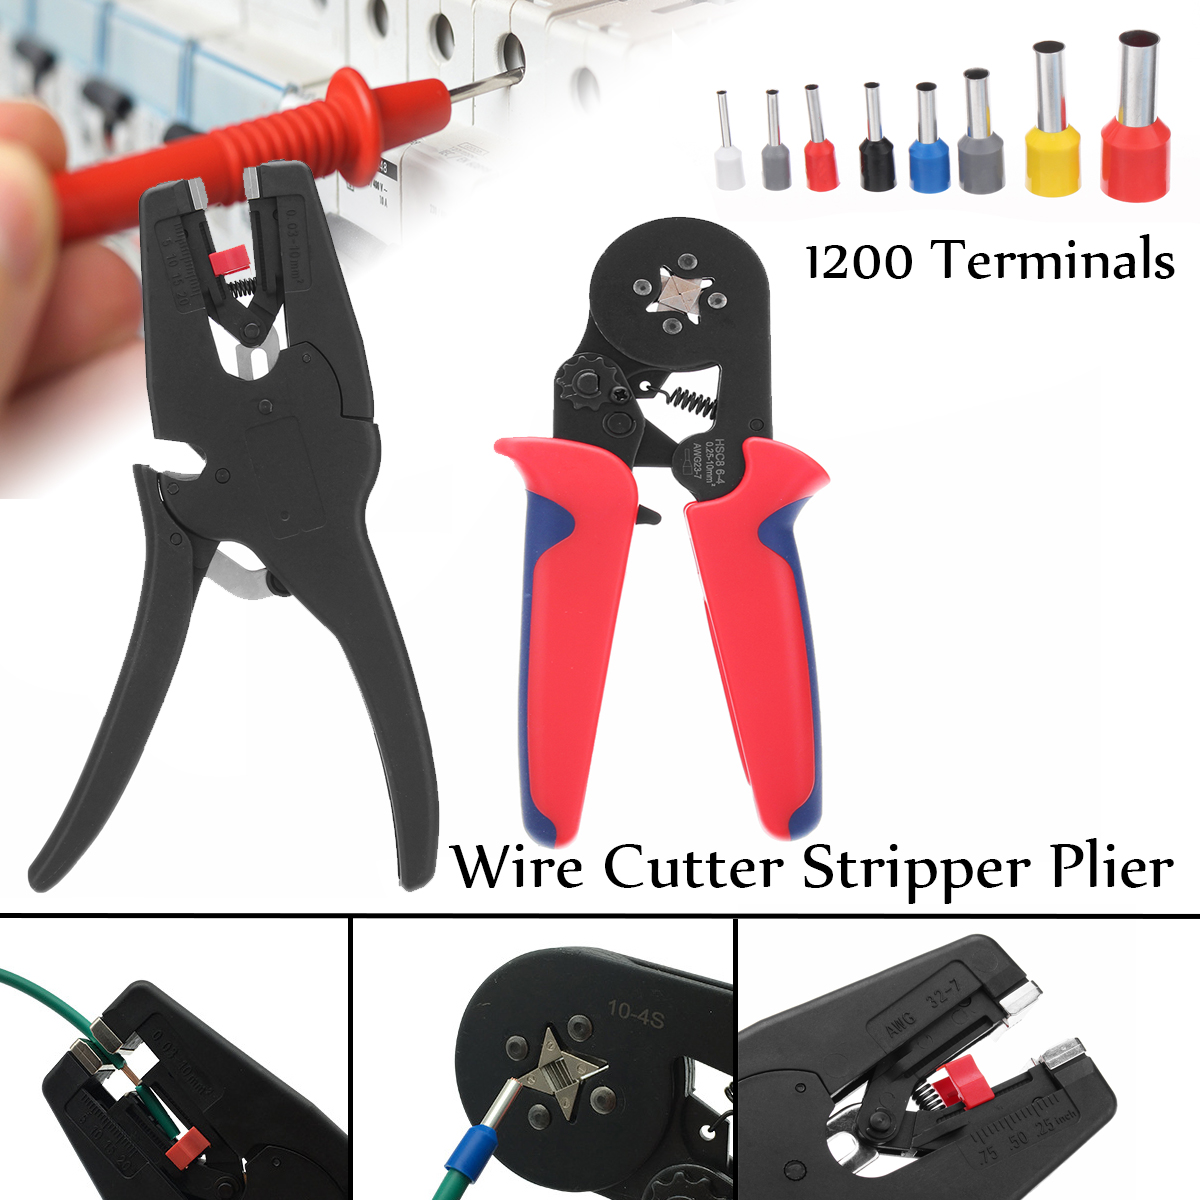 1200Pcs Terminals Kit Crimpong Tool Electric Wire Cutter Pliers Stripper Cable Cutting Crimper Plier Electrician Hand Tools 6inch cable cutter plastic handle electric wire stripper cutting plier tool kit